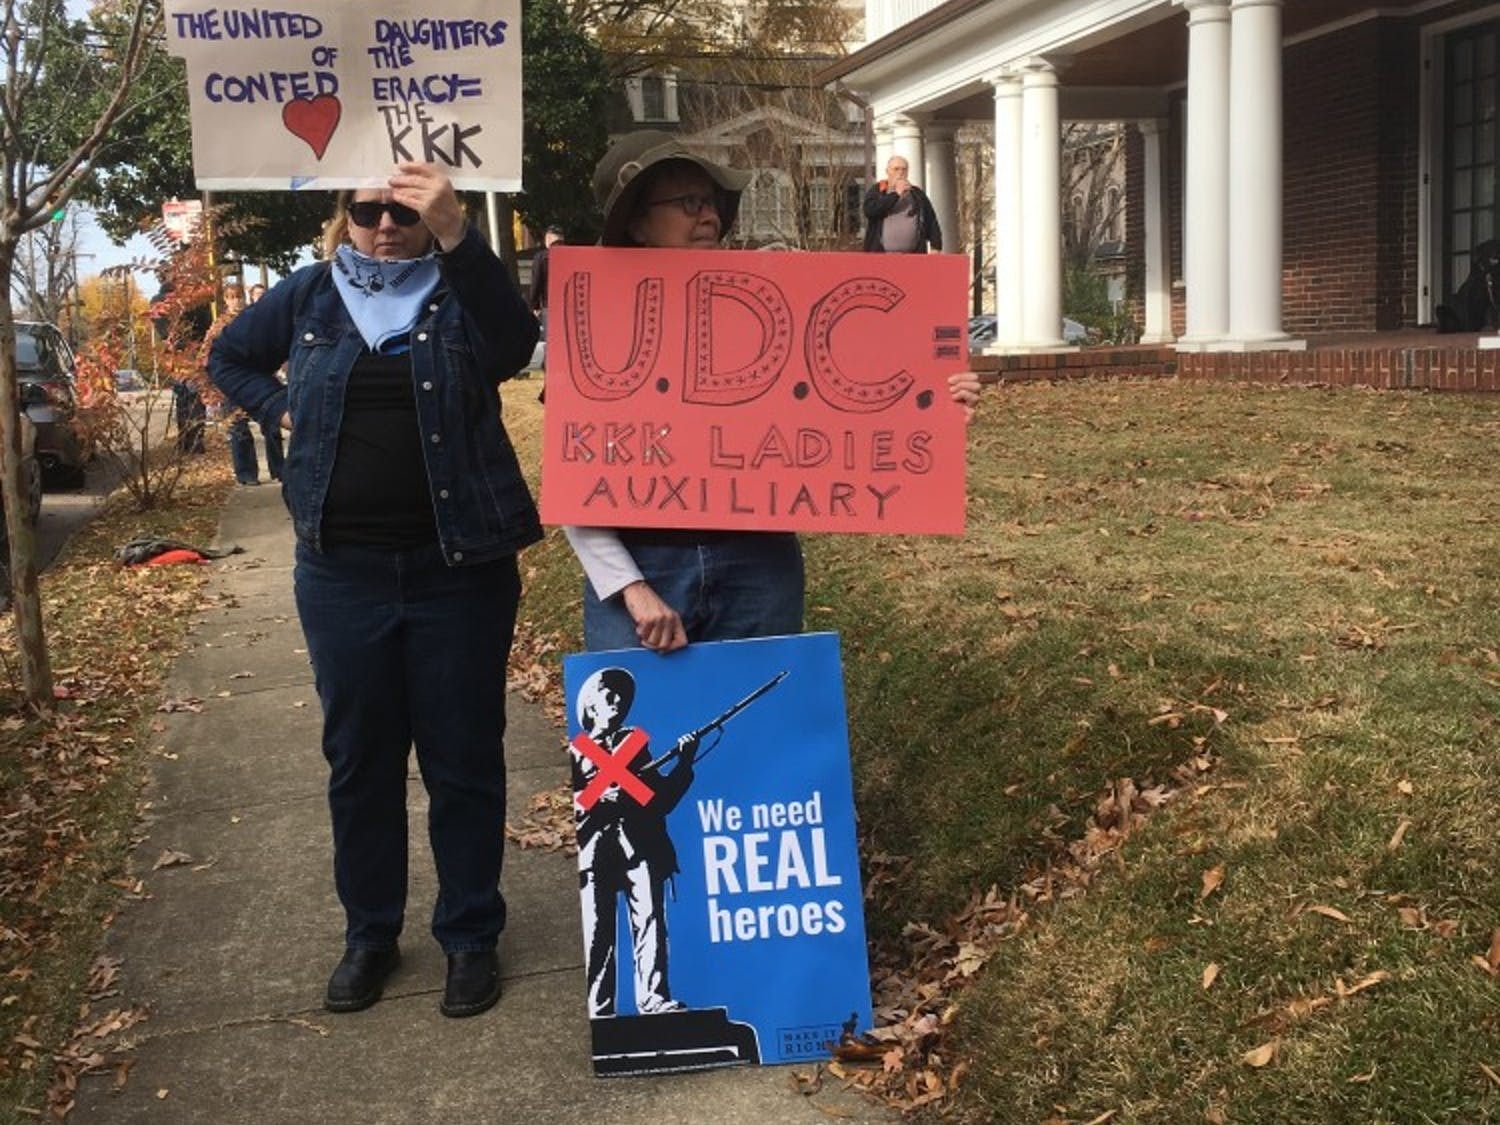 Two activists with Hillsborough Progressives Taking Action, including UNC professor Altha Cravey, protest a United Daughters of the Confederacy meeting.